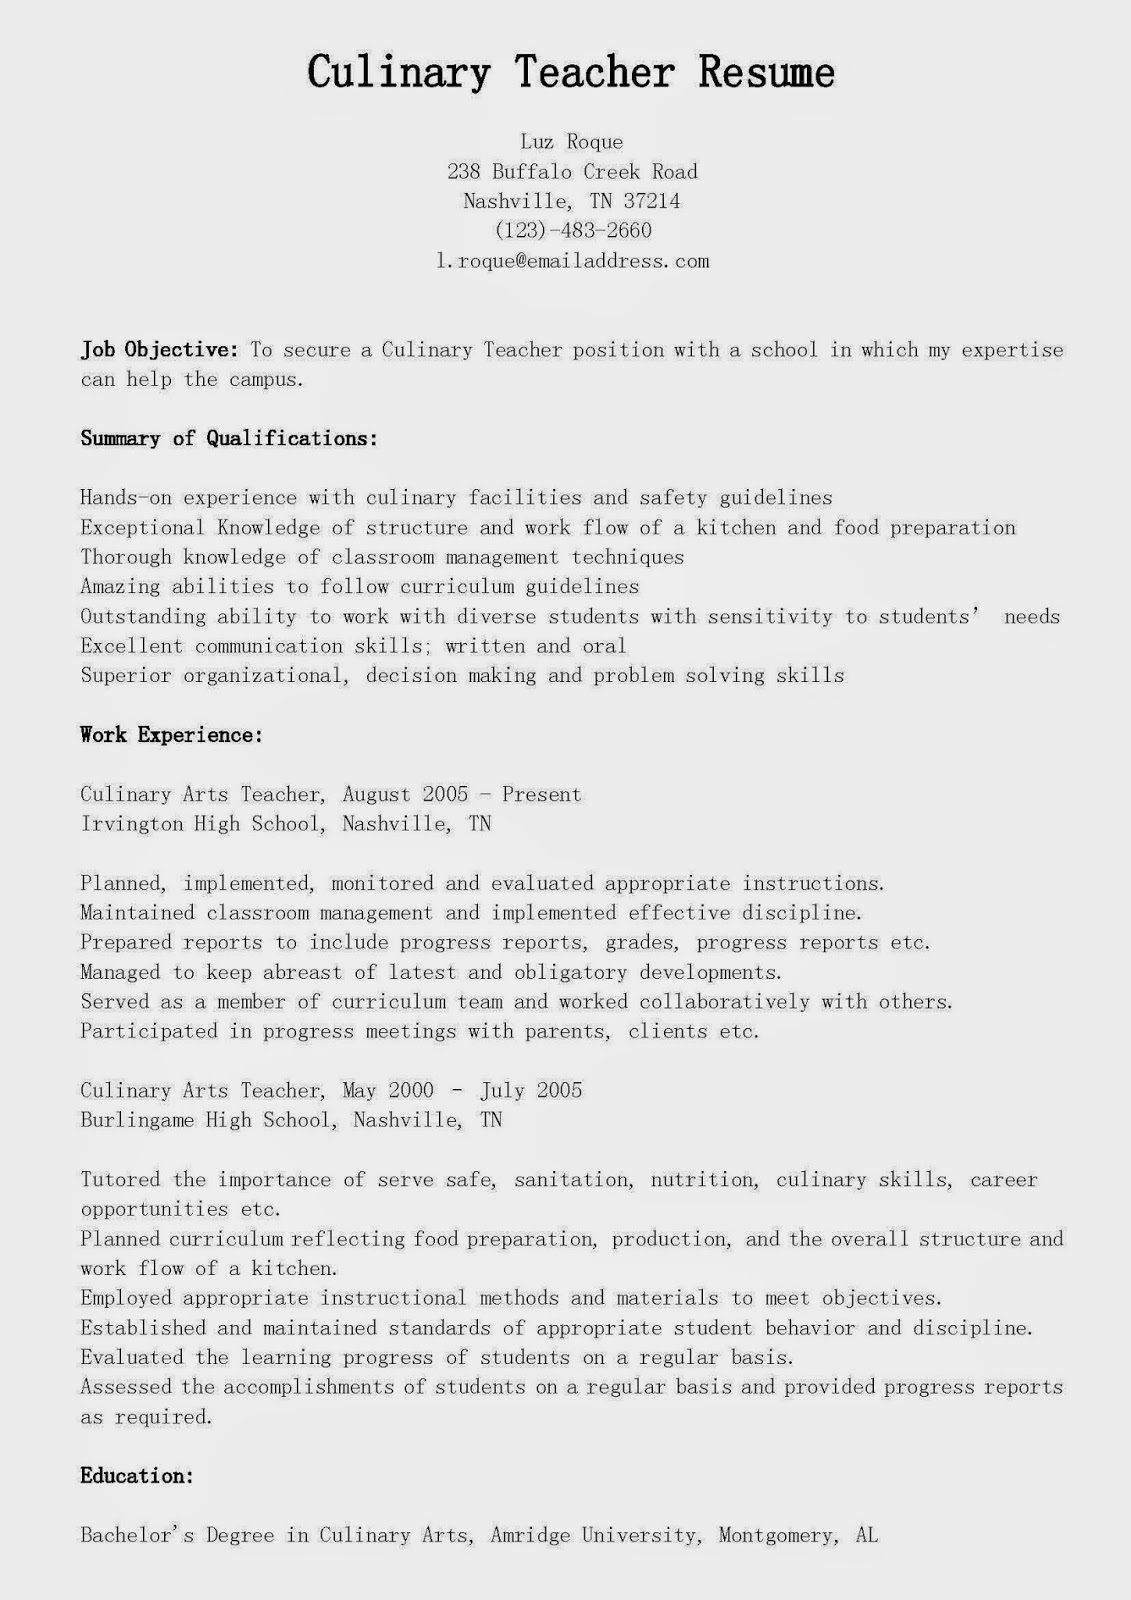 Information Technology Application Letter Livmoore Tk  Culinary Arts Resume